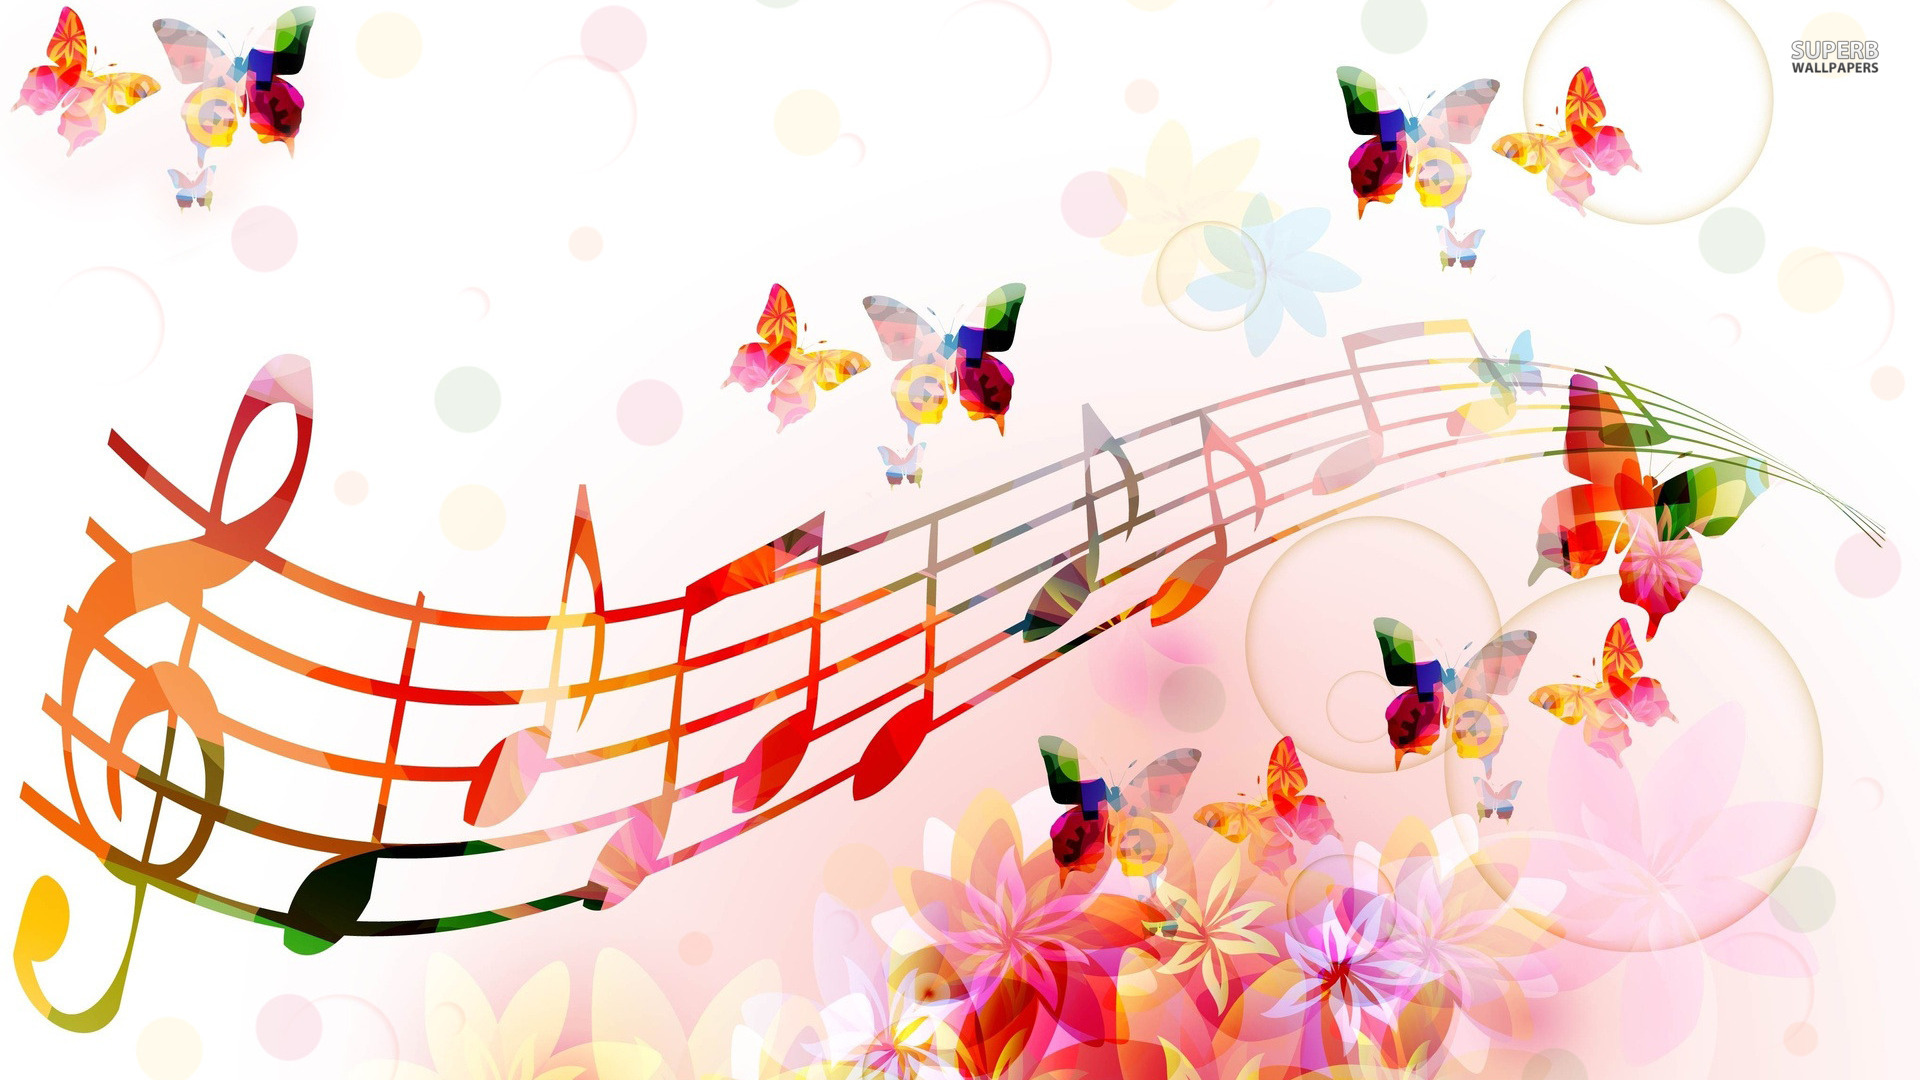 musical wallpapers wallpapersafari